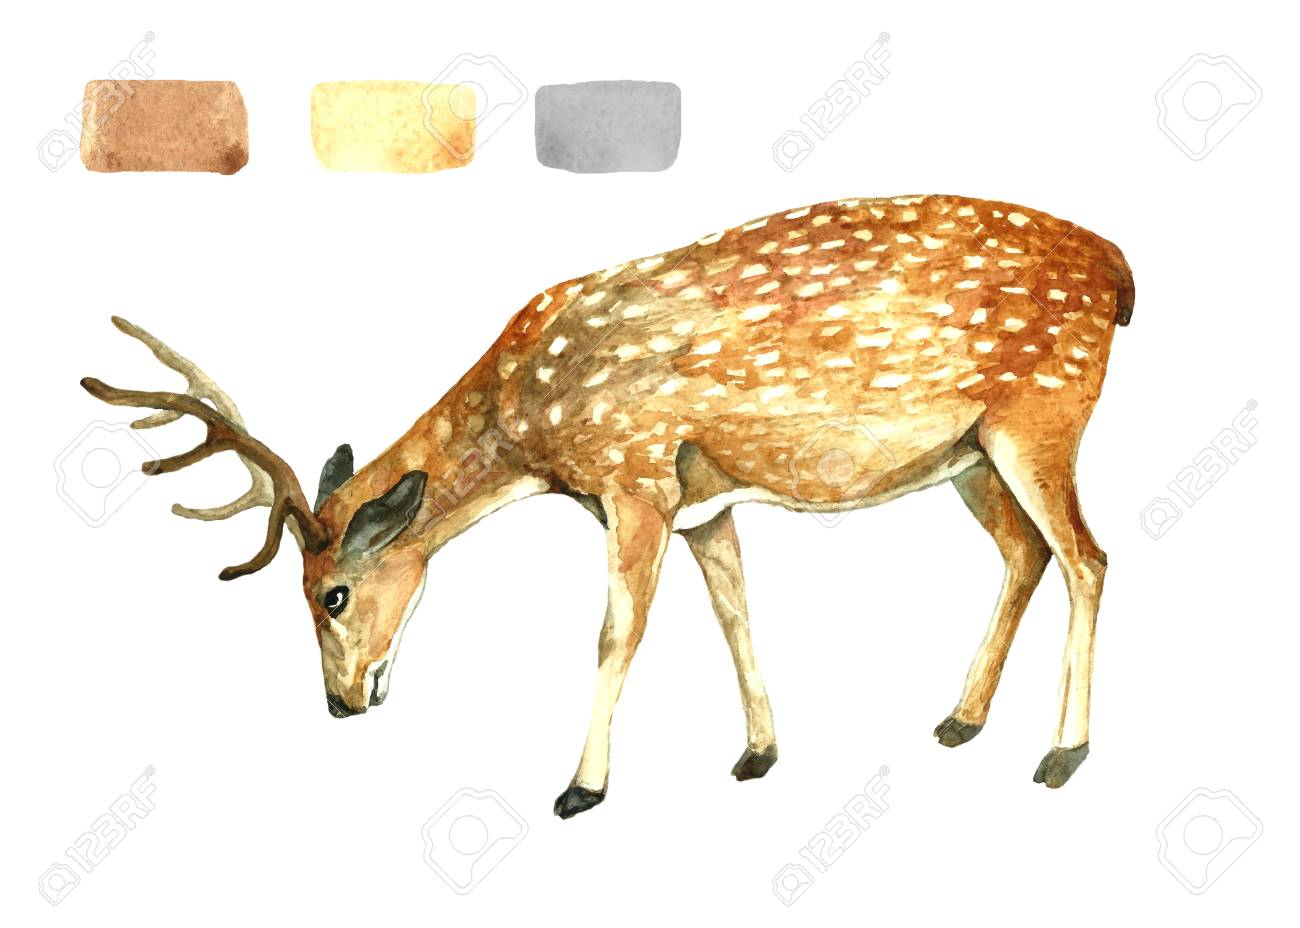 figure forest deer paints watercolor illustration of animal stock photo picture and royalty free image image 118688639 stock illustration